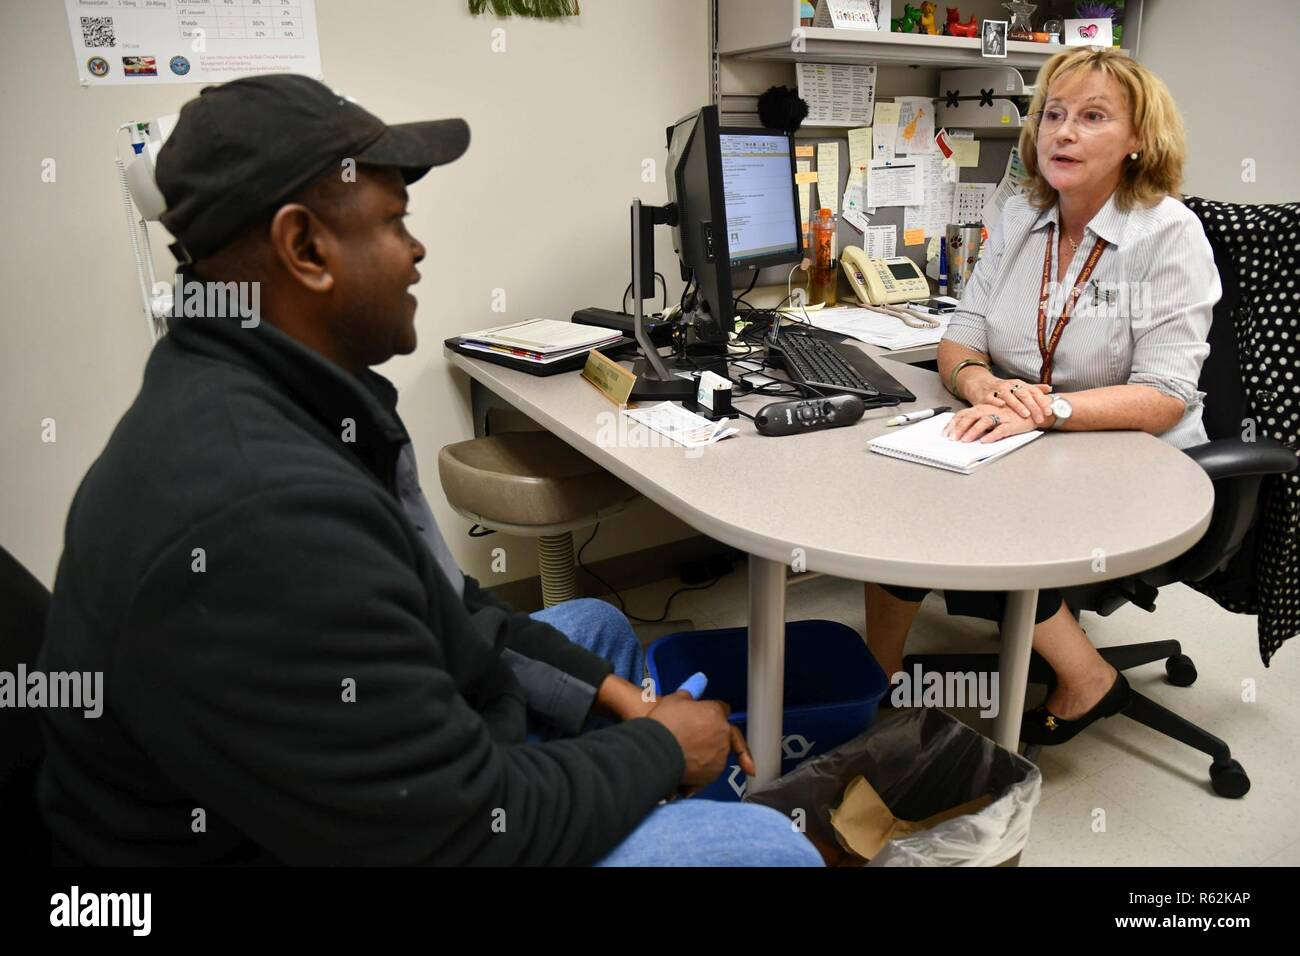 Clinical Pharmacist Kelly Authier discusses nutrition, exercise and other health maintenance issues with military retiree Everett Stevens during a Nov. 19 appointment in her office at Kenner Army Health Clinic. - Stock Image